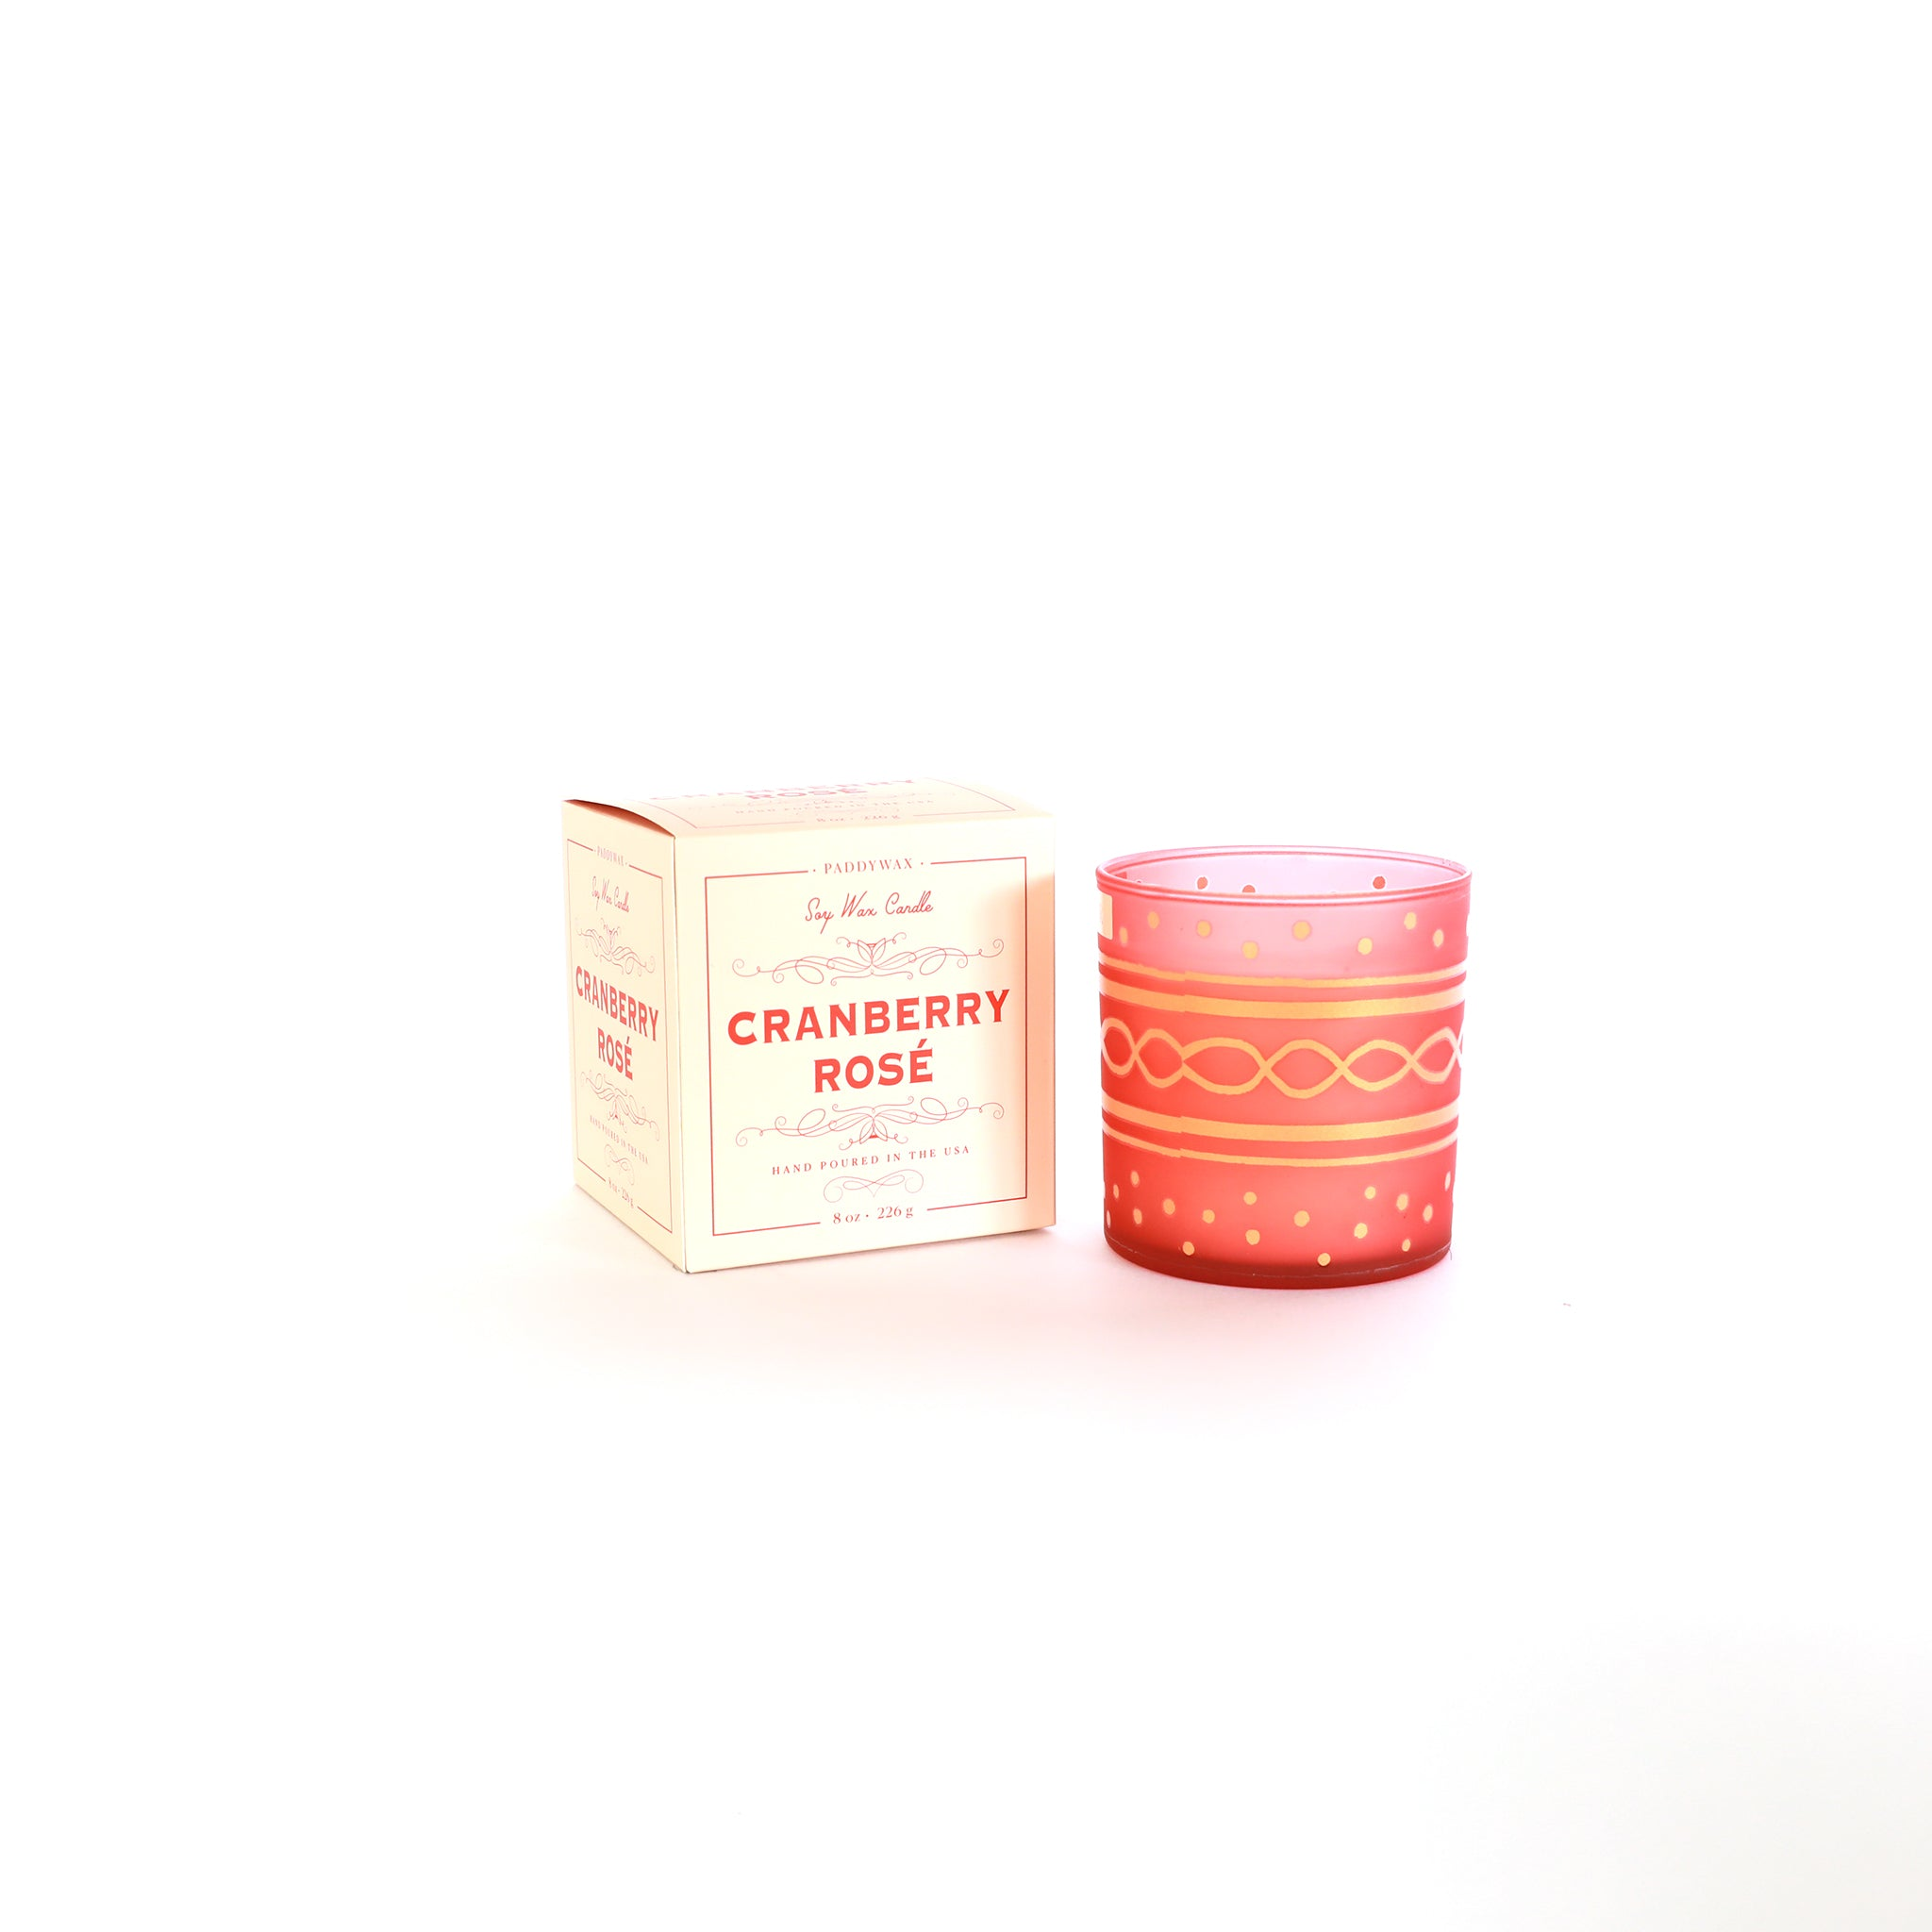 8 oz Balsam /& Berries Paddywax Candles Glee Collection Holiday Scented Candle